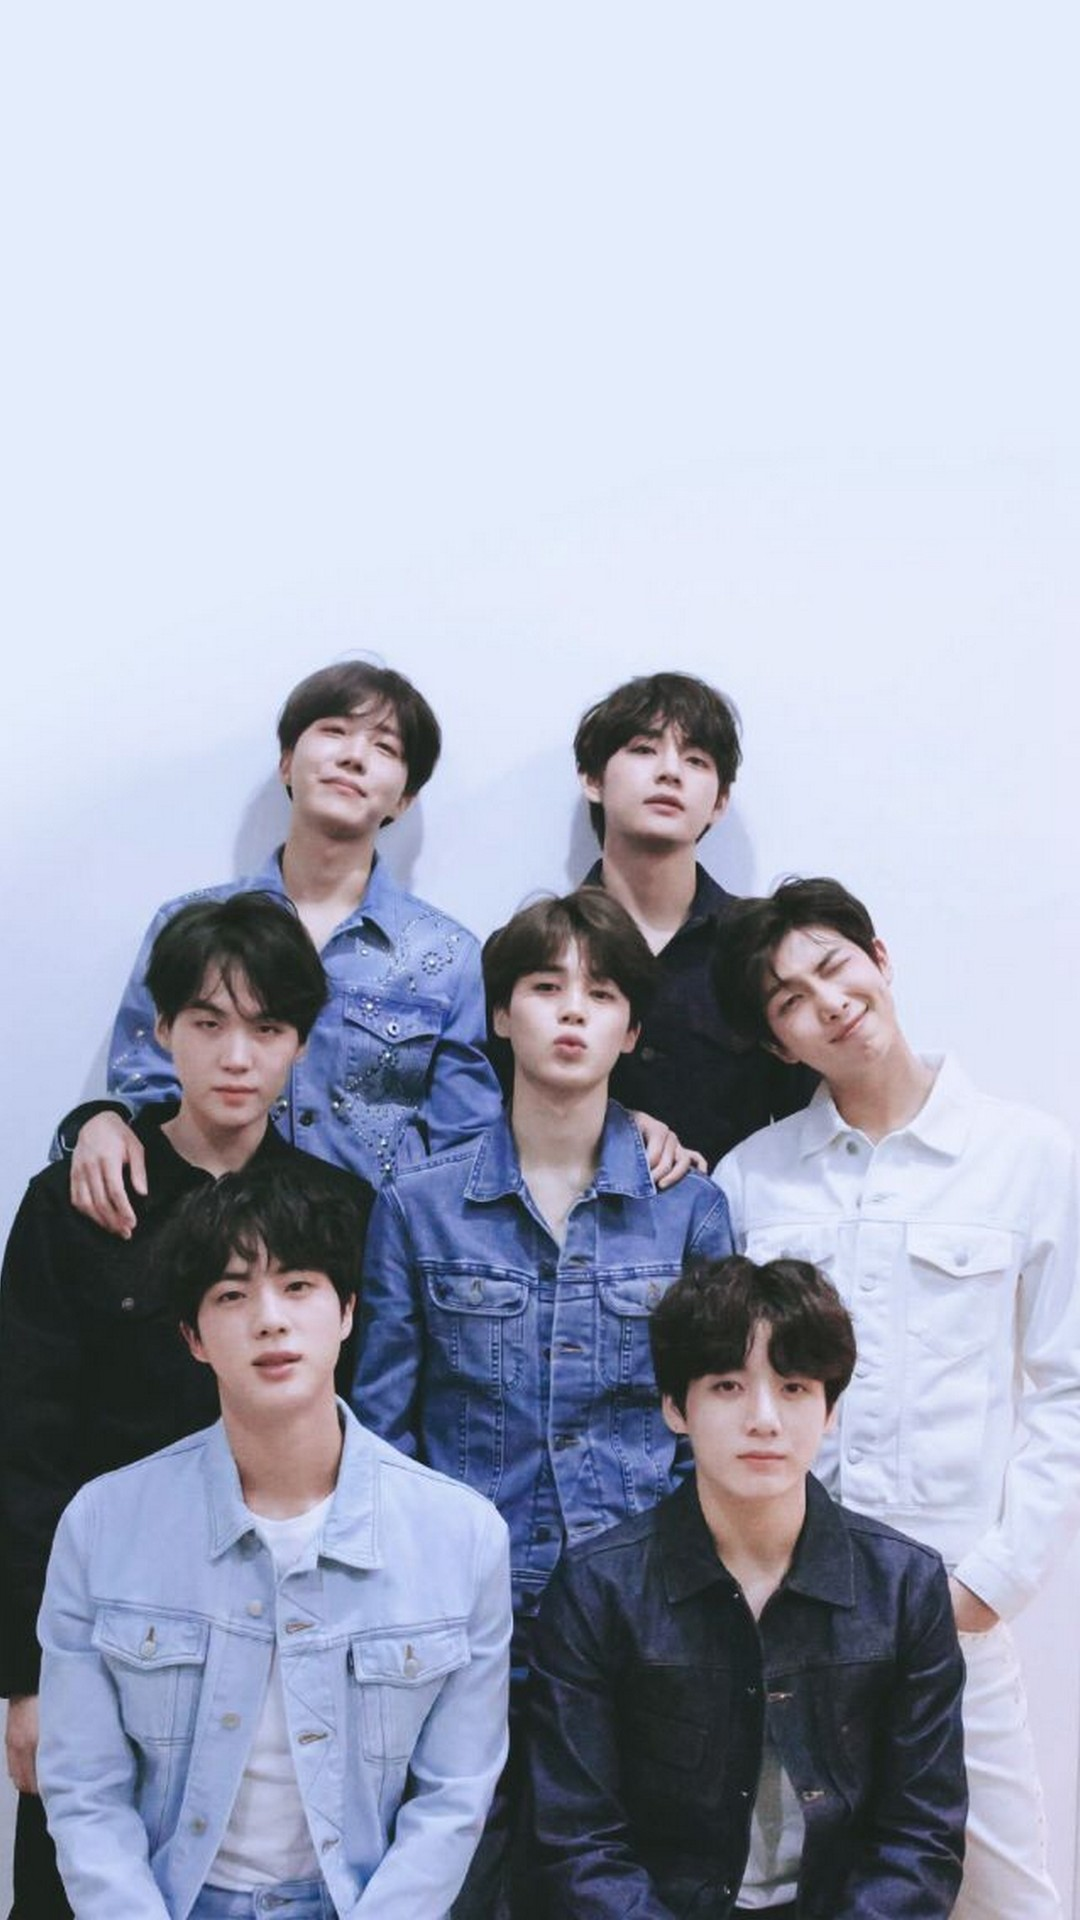 BTS Wallpaper for iPhone